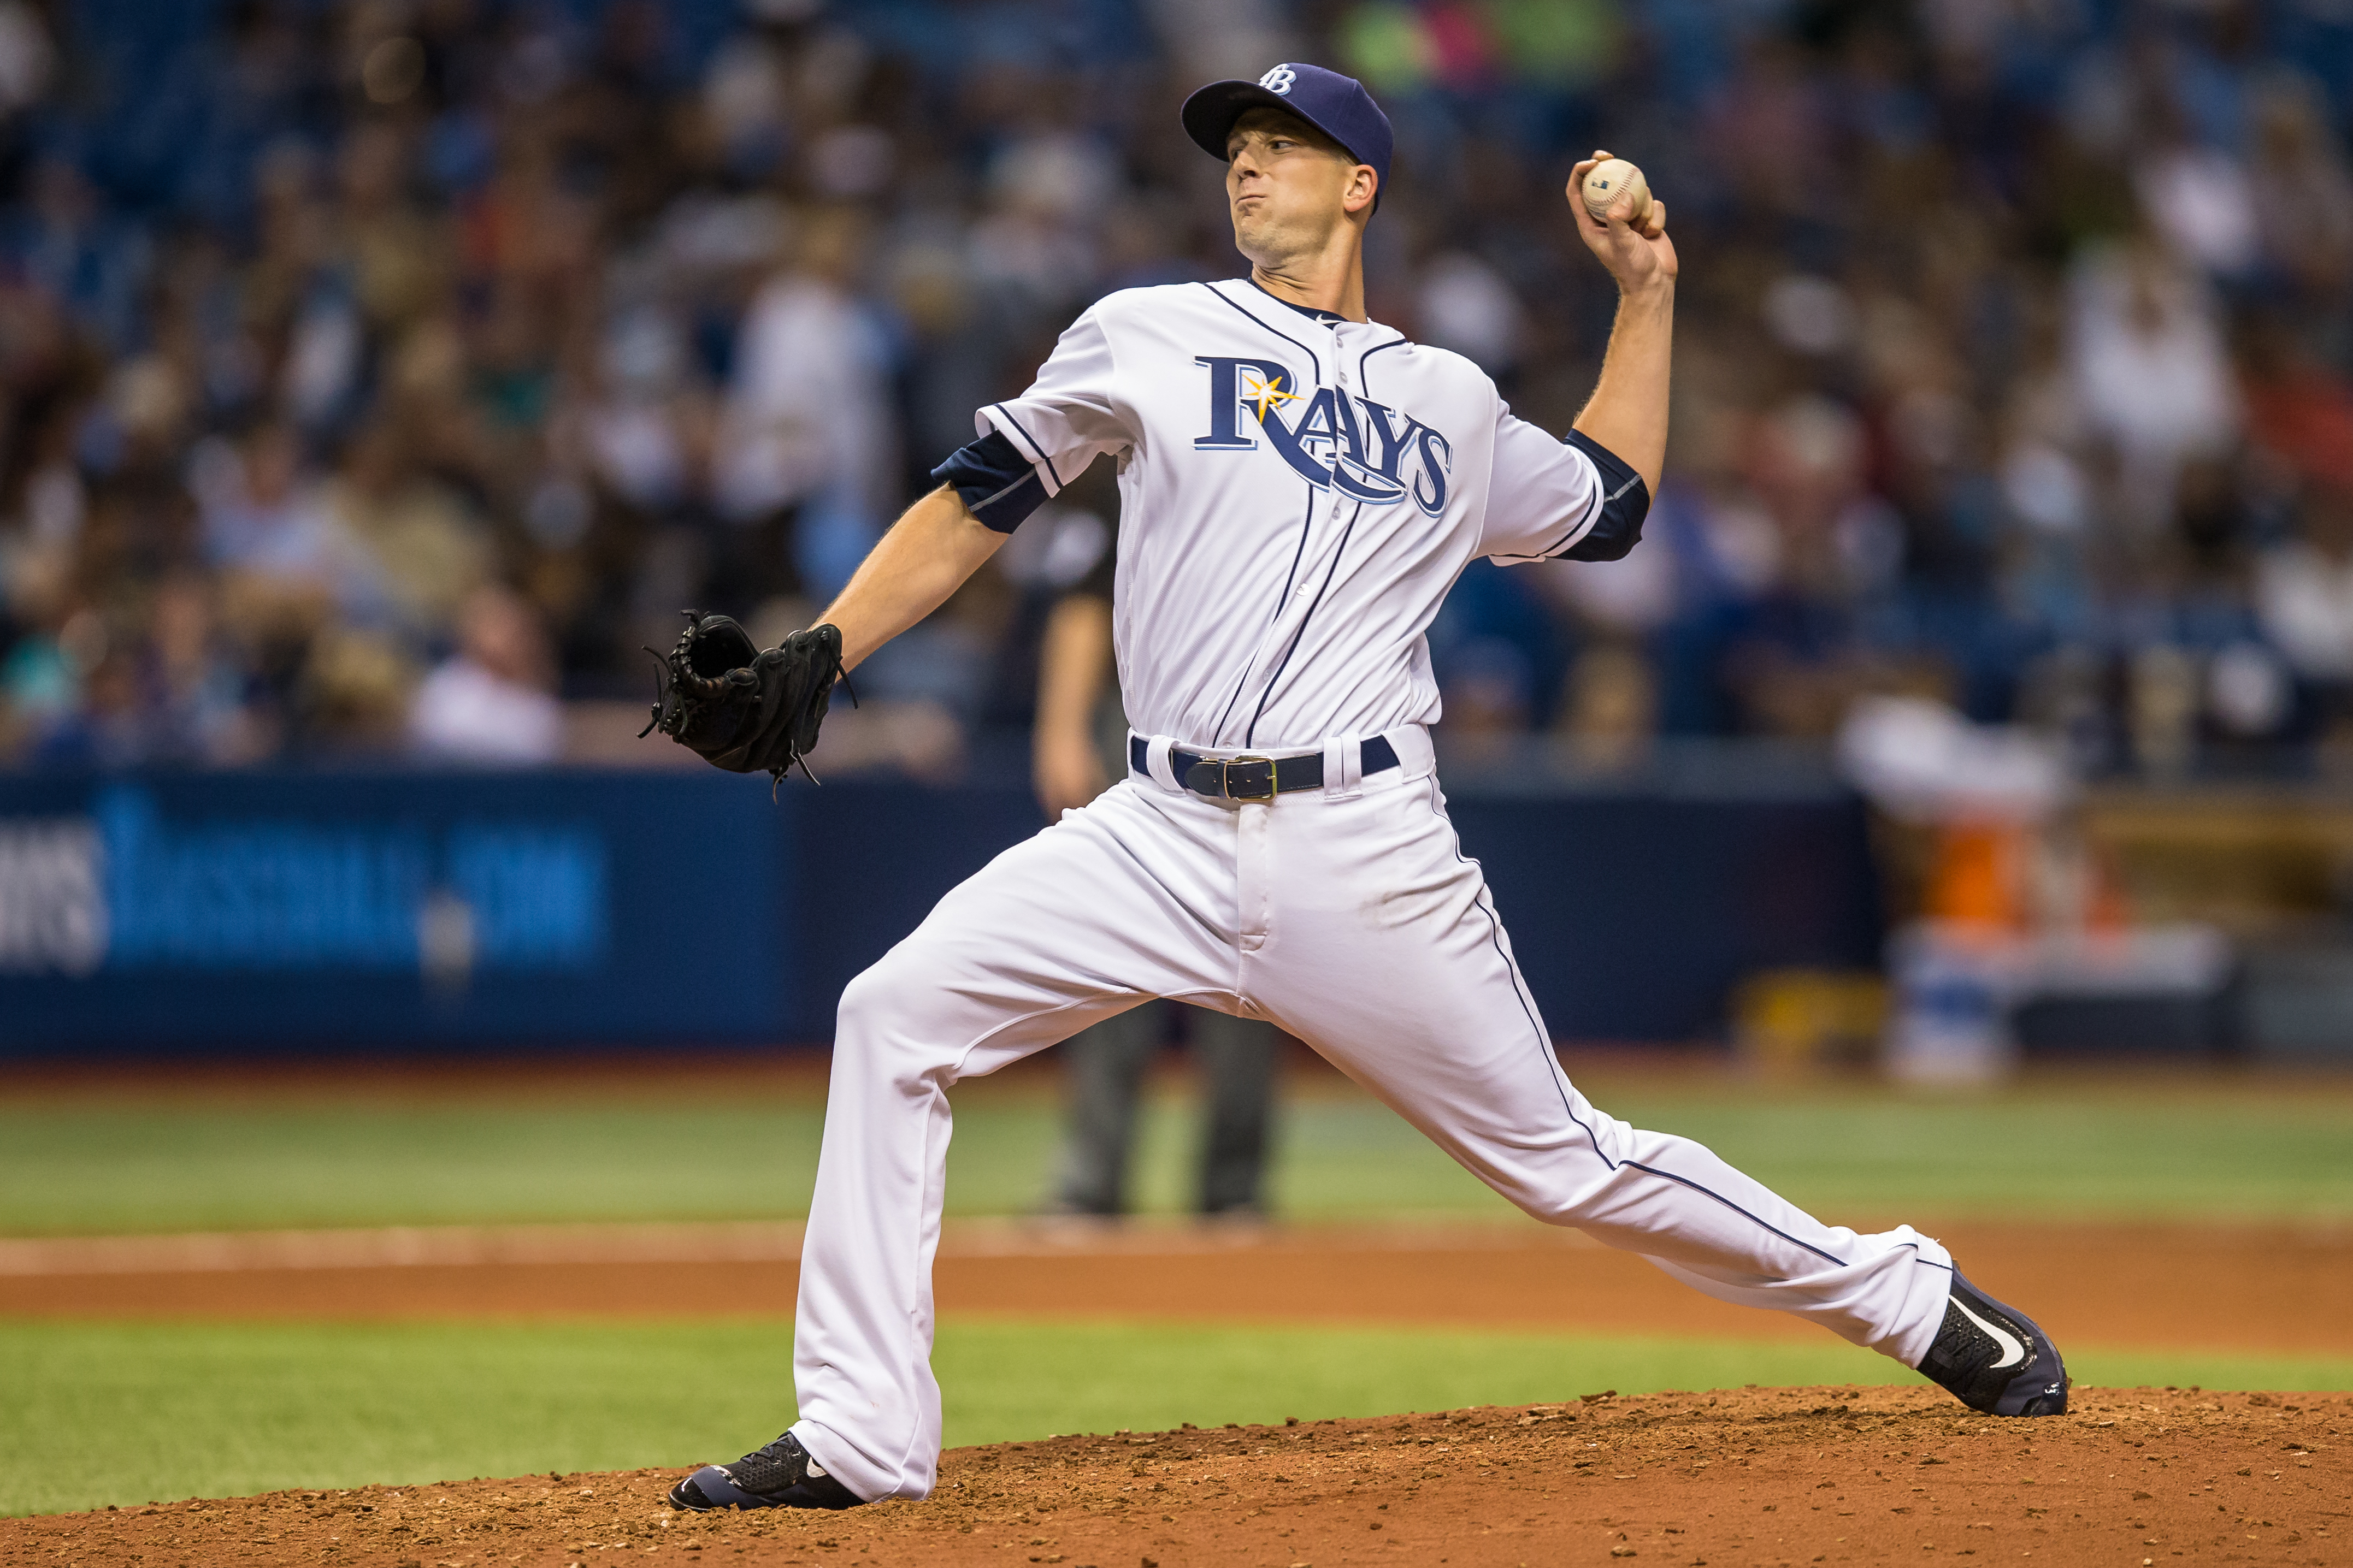 Smyly gave up two homers to lefties in loss to Blue Jays./TRAVIS PENDERGRASS